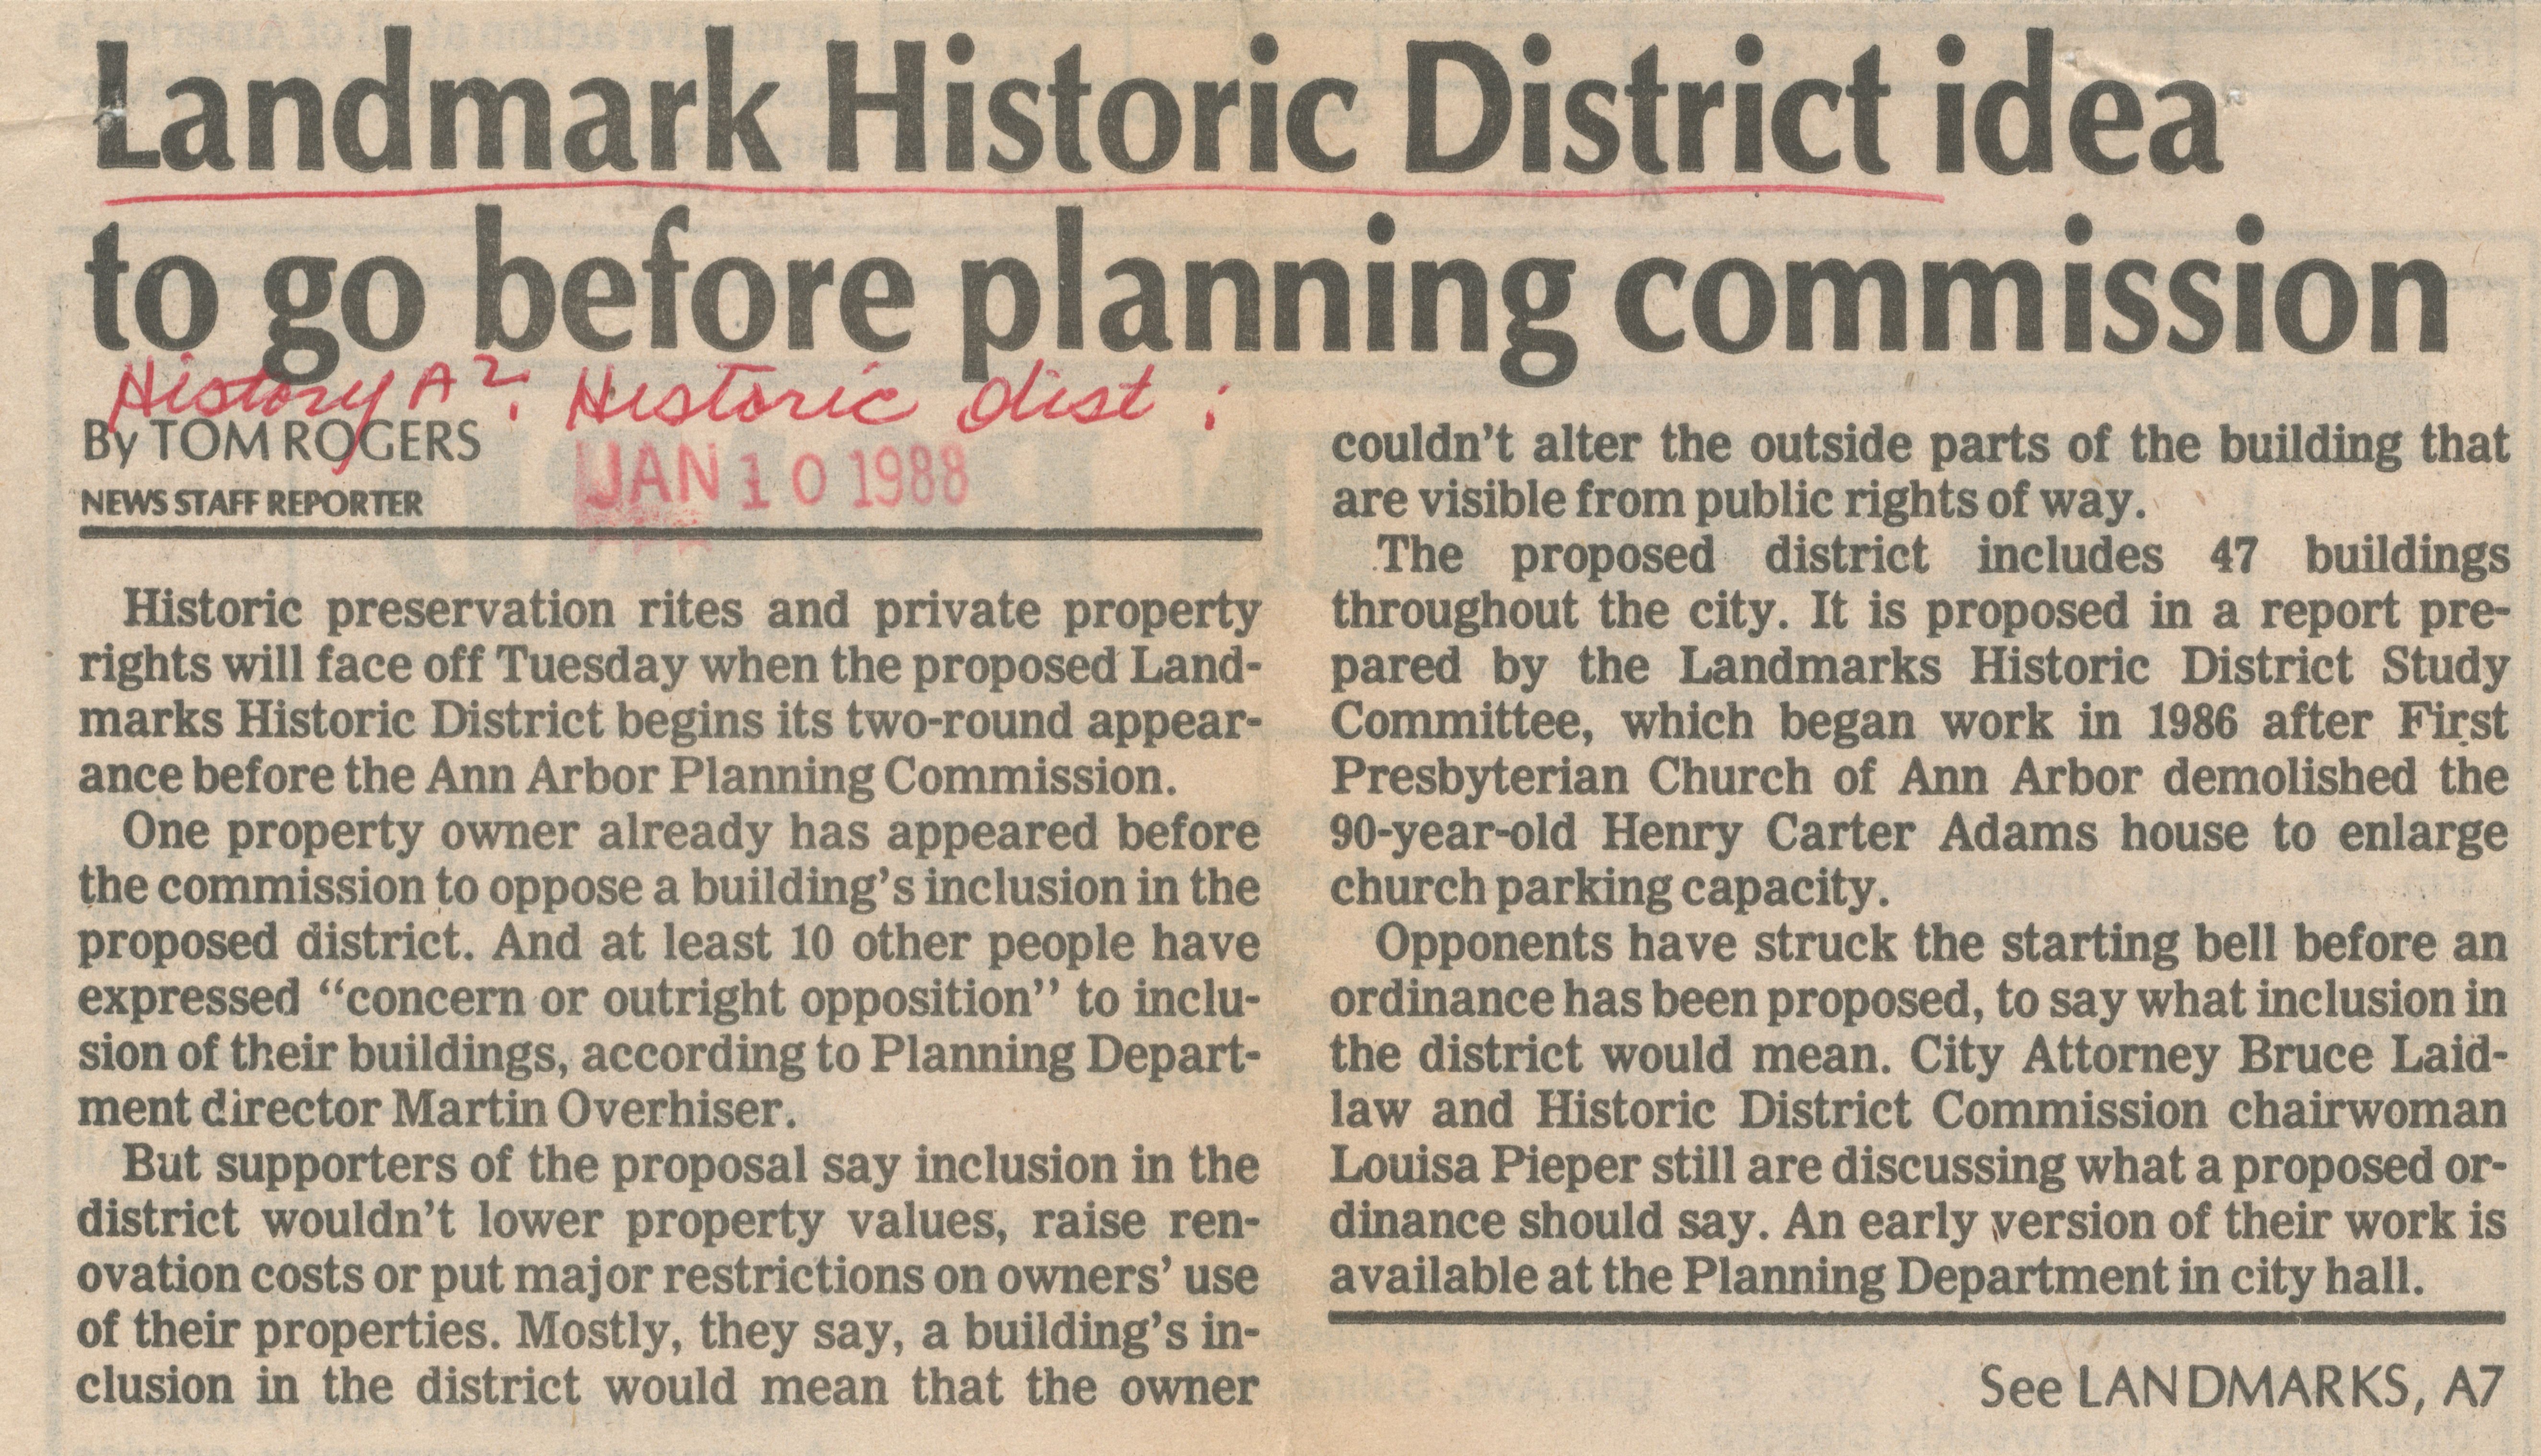 Landmark Historic District idea to go before planning commission image